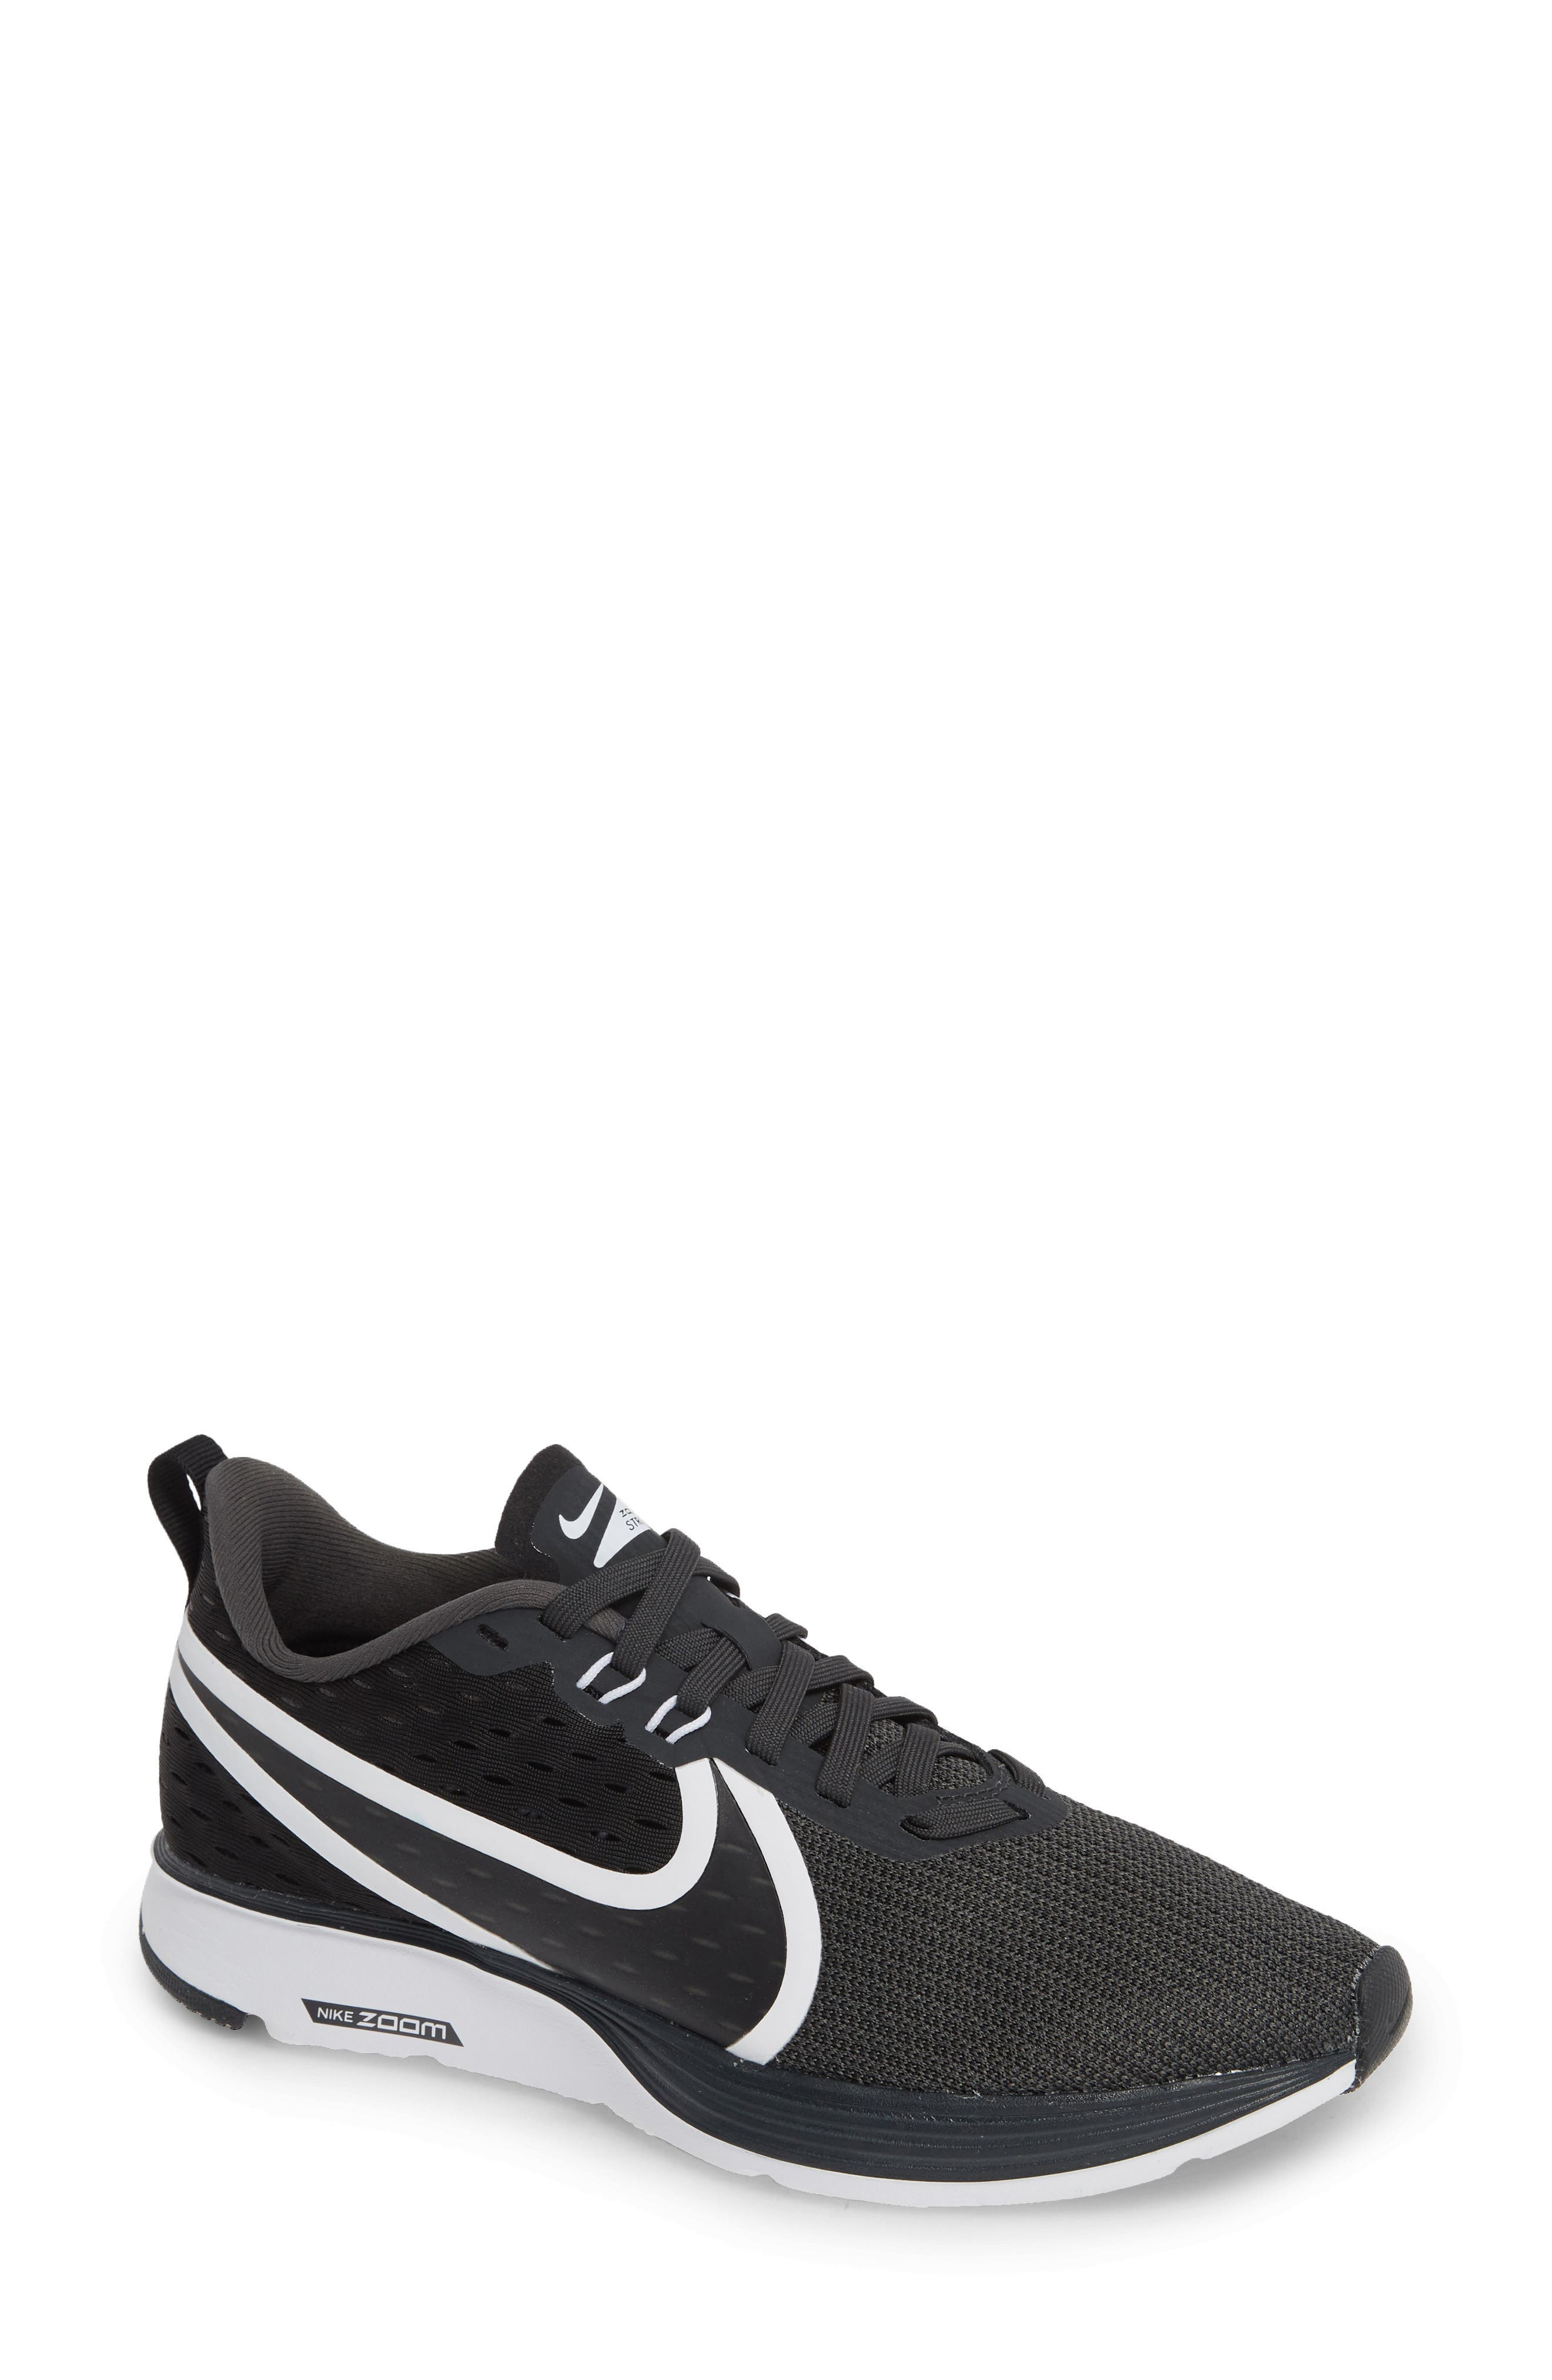 Zoom Strike 2 Running Shoe, Main, color, BLACK/ ANTHRACITE/ WHITE